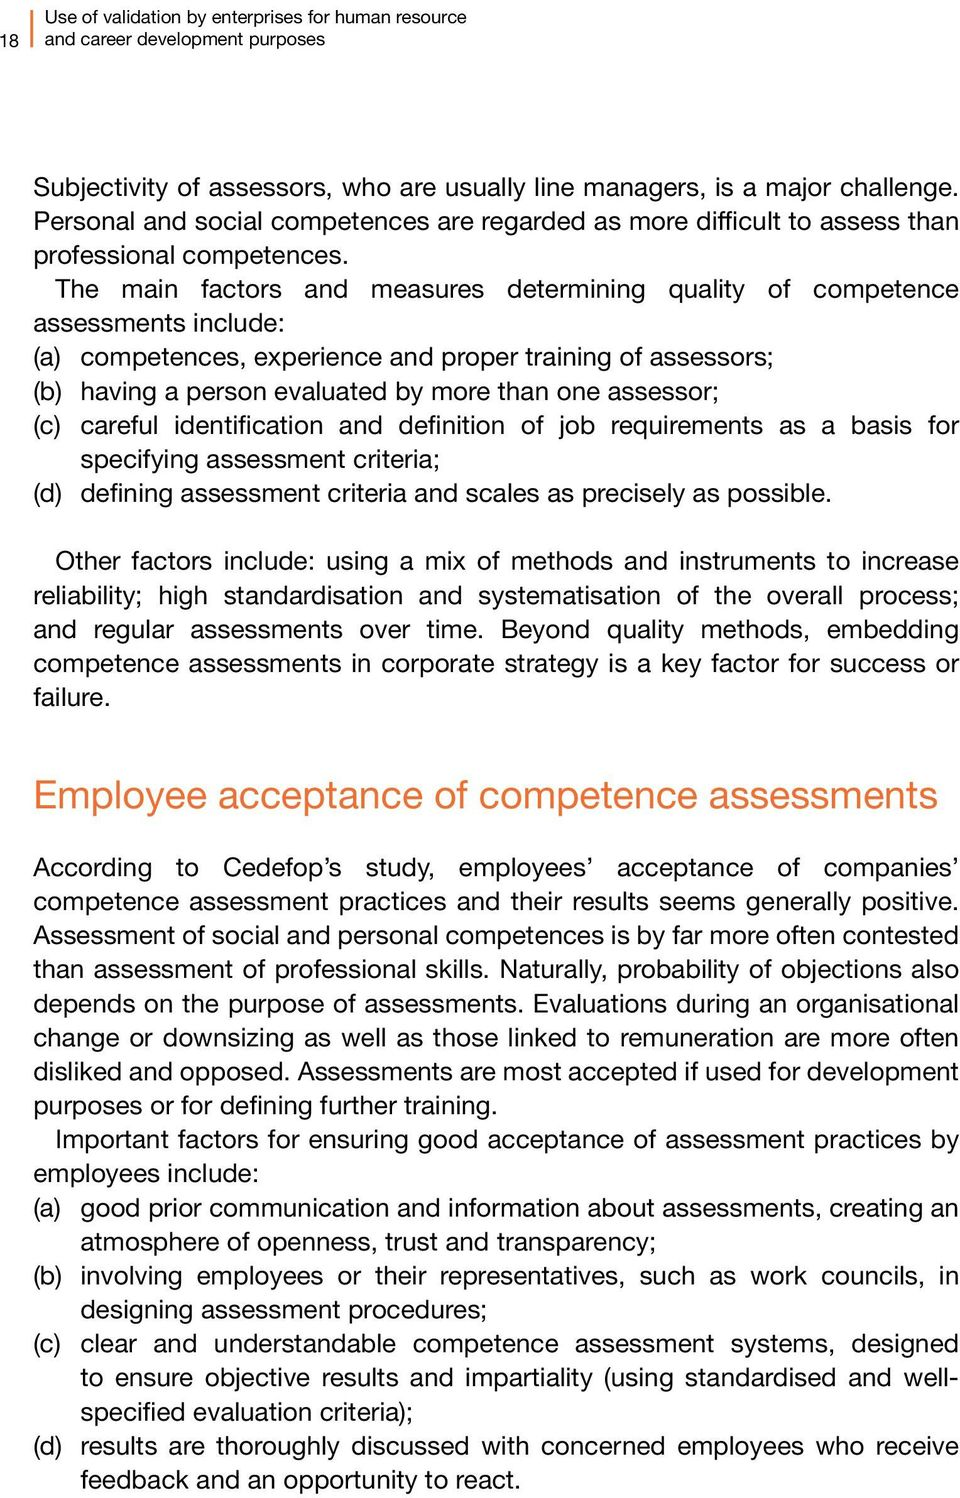 The main factors and measures determining quality of competence assessments include: (a) competences, experience and proper training of assessors; (b) having a person evaluated by more than one